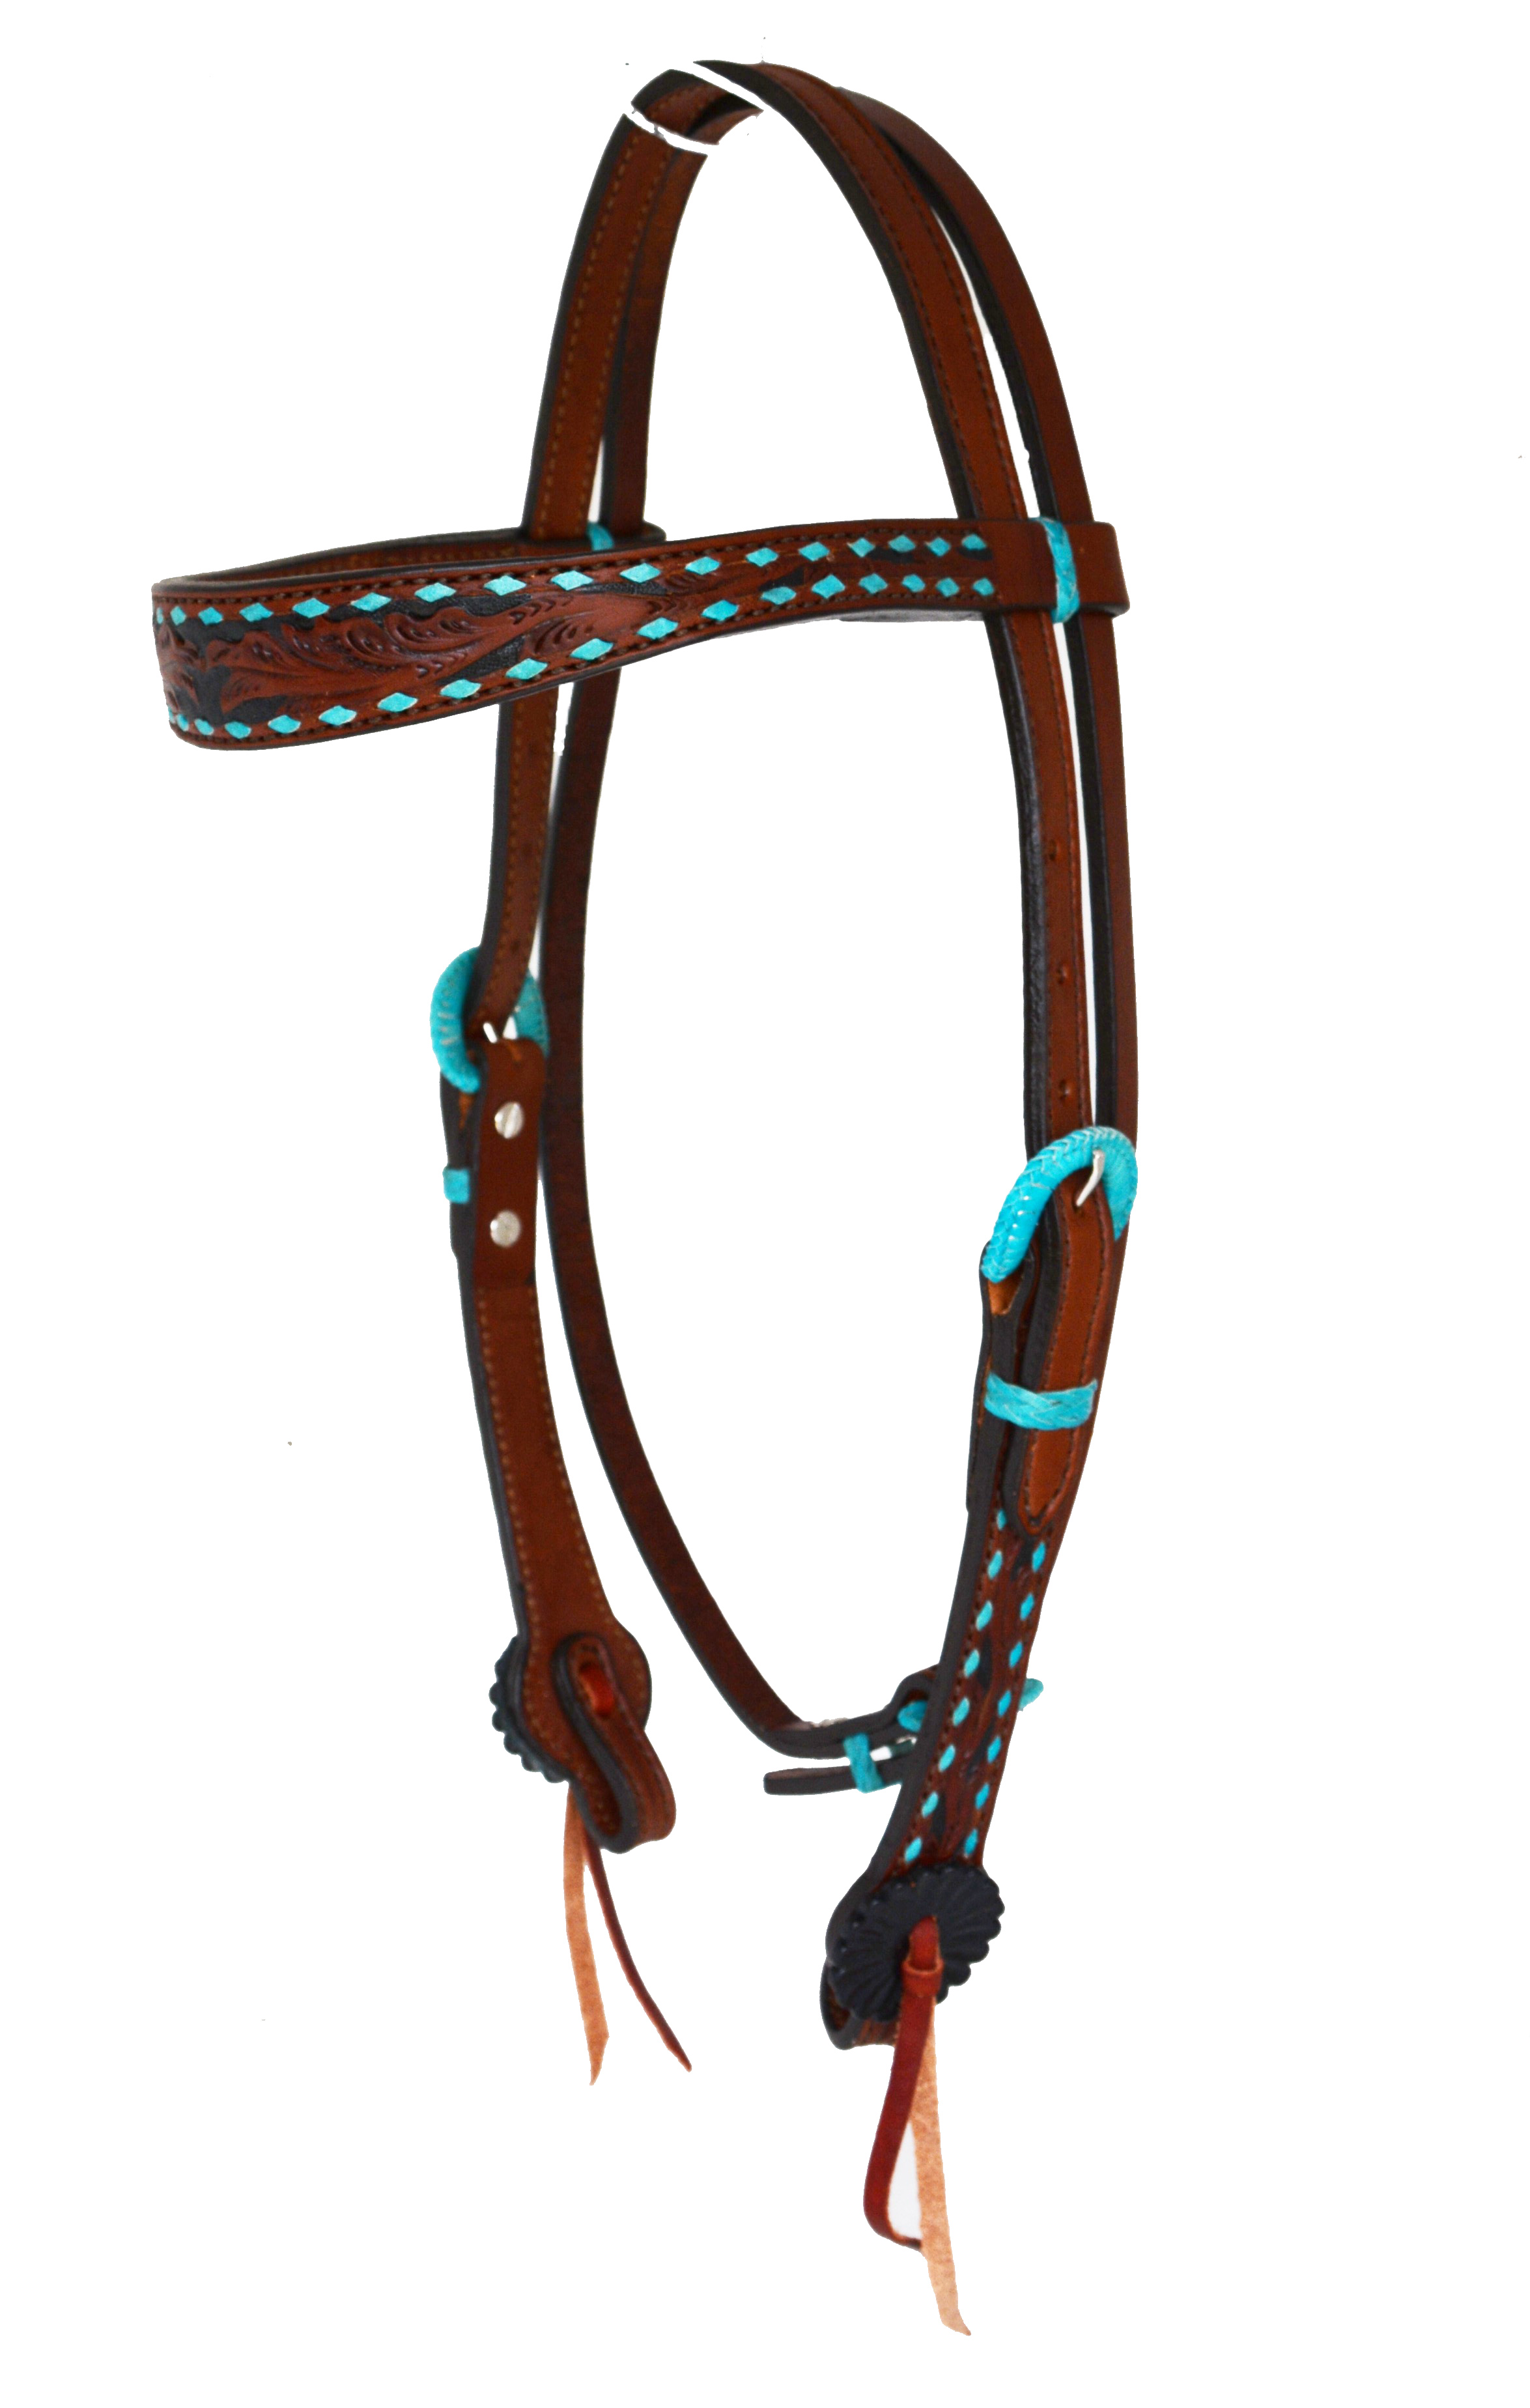 CONTOURED BROW HEADSTALL W TURQUOISE BUCKSTITCH